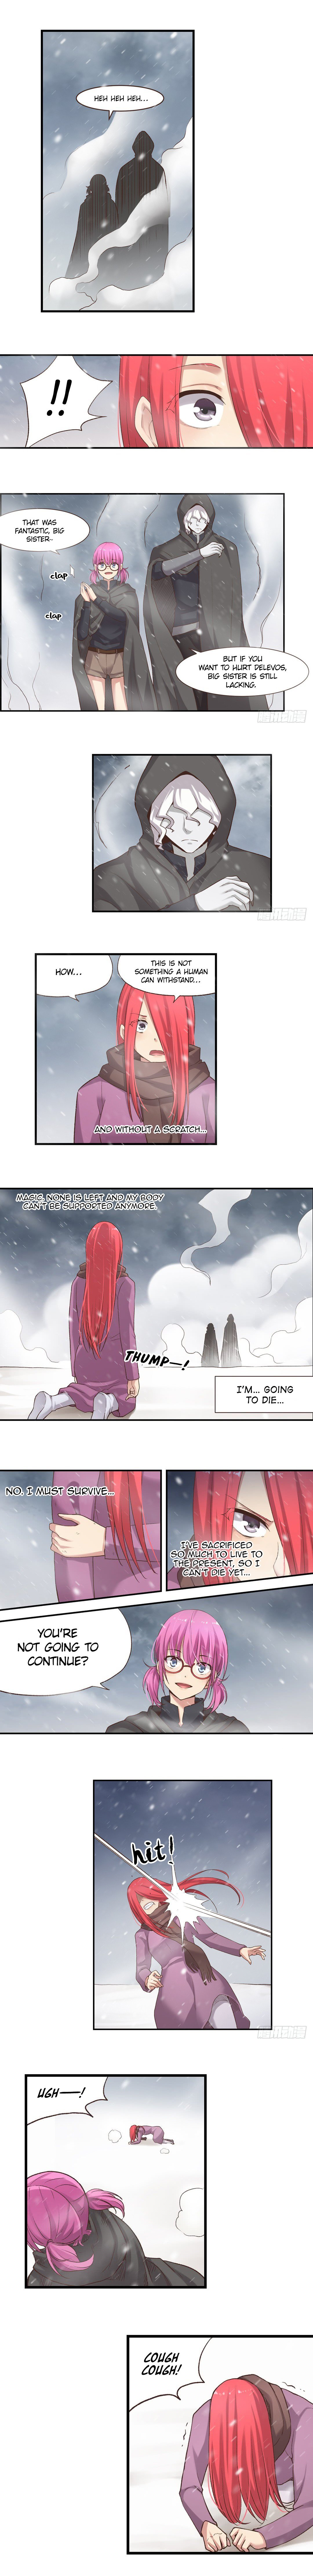 Manga Because I'm An Uncle who Runs A Weapon Shop - Chapter 63 Page 5